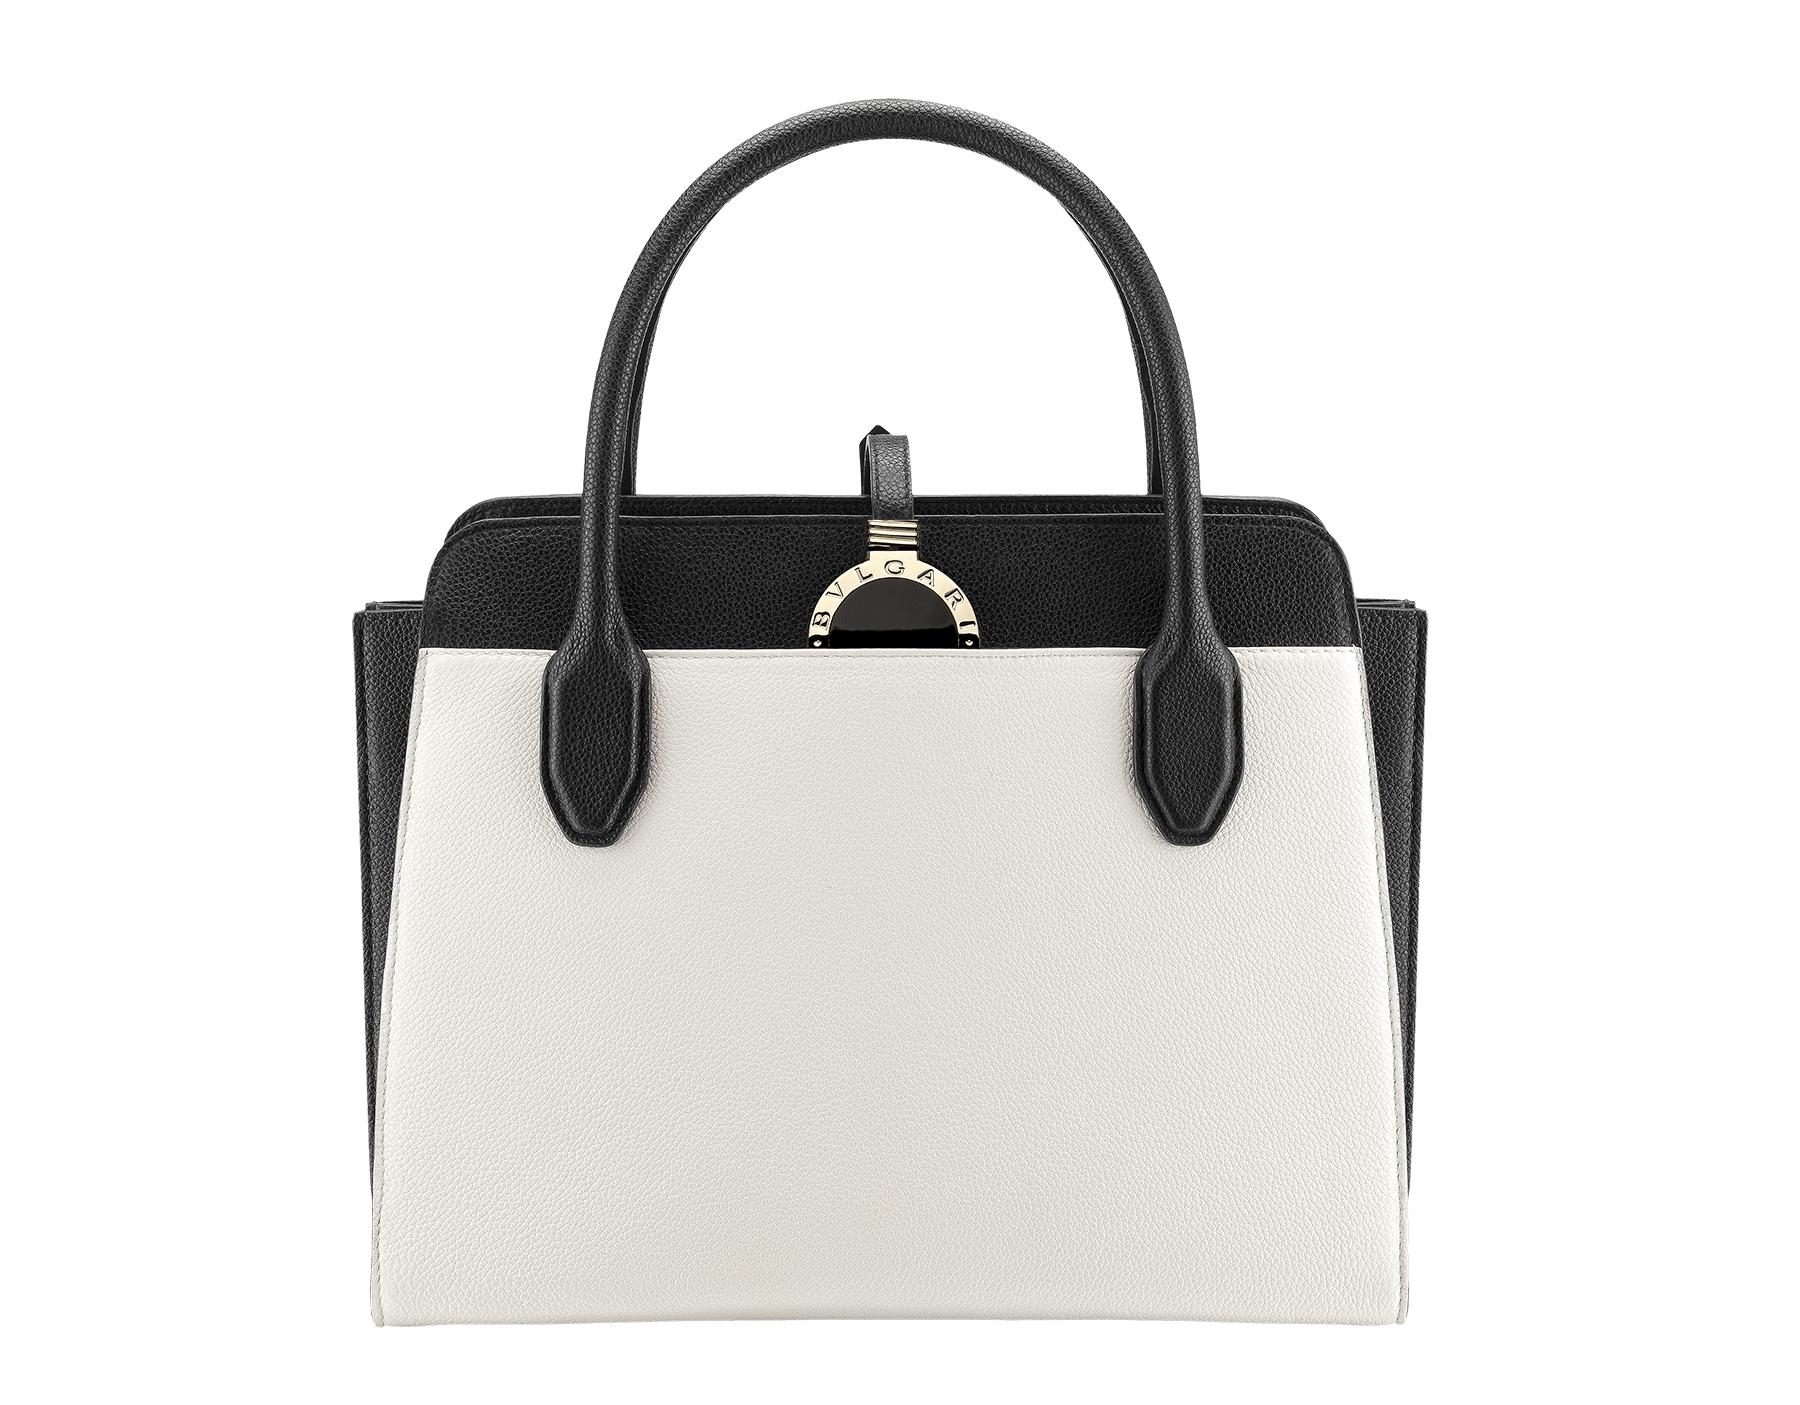 Tote bag BVLGARI BVLGARI Alba in white agate and black grain calf leather with zip closure. Pendant motif in brass light gold plated metal featuring the iconic double logo and Tubogas motif. 282797 image 1